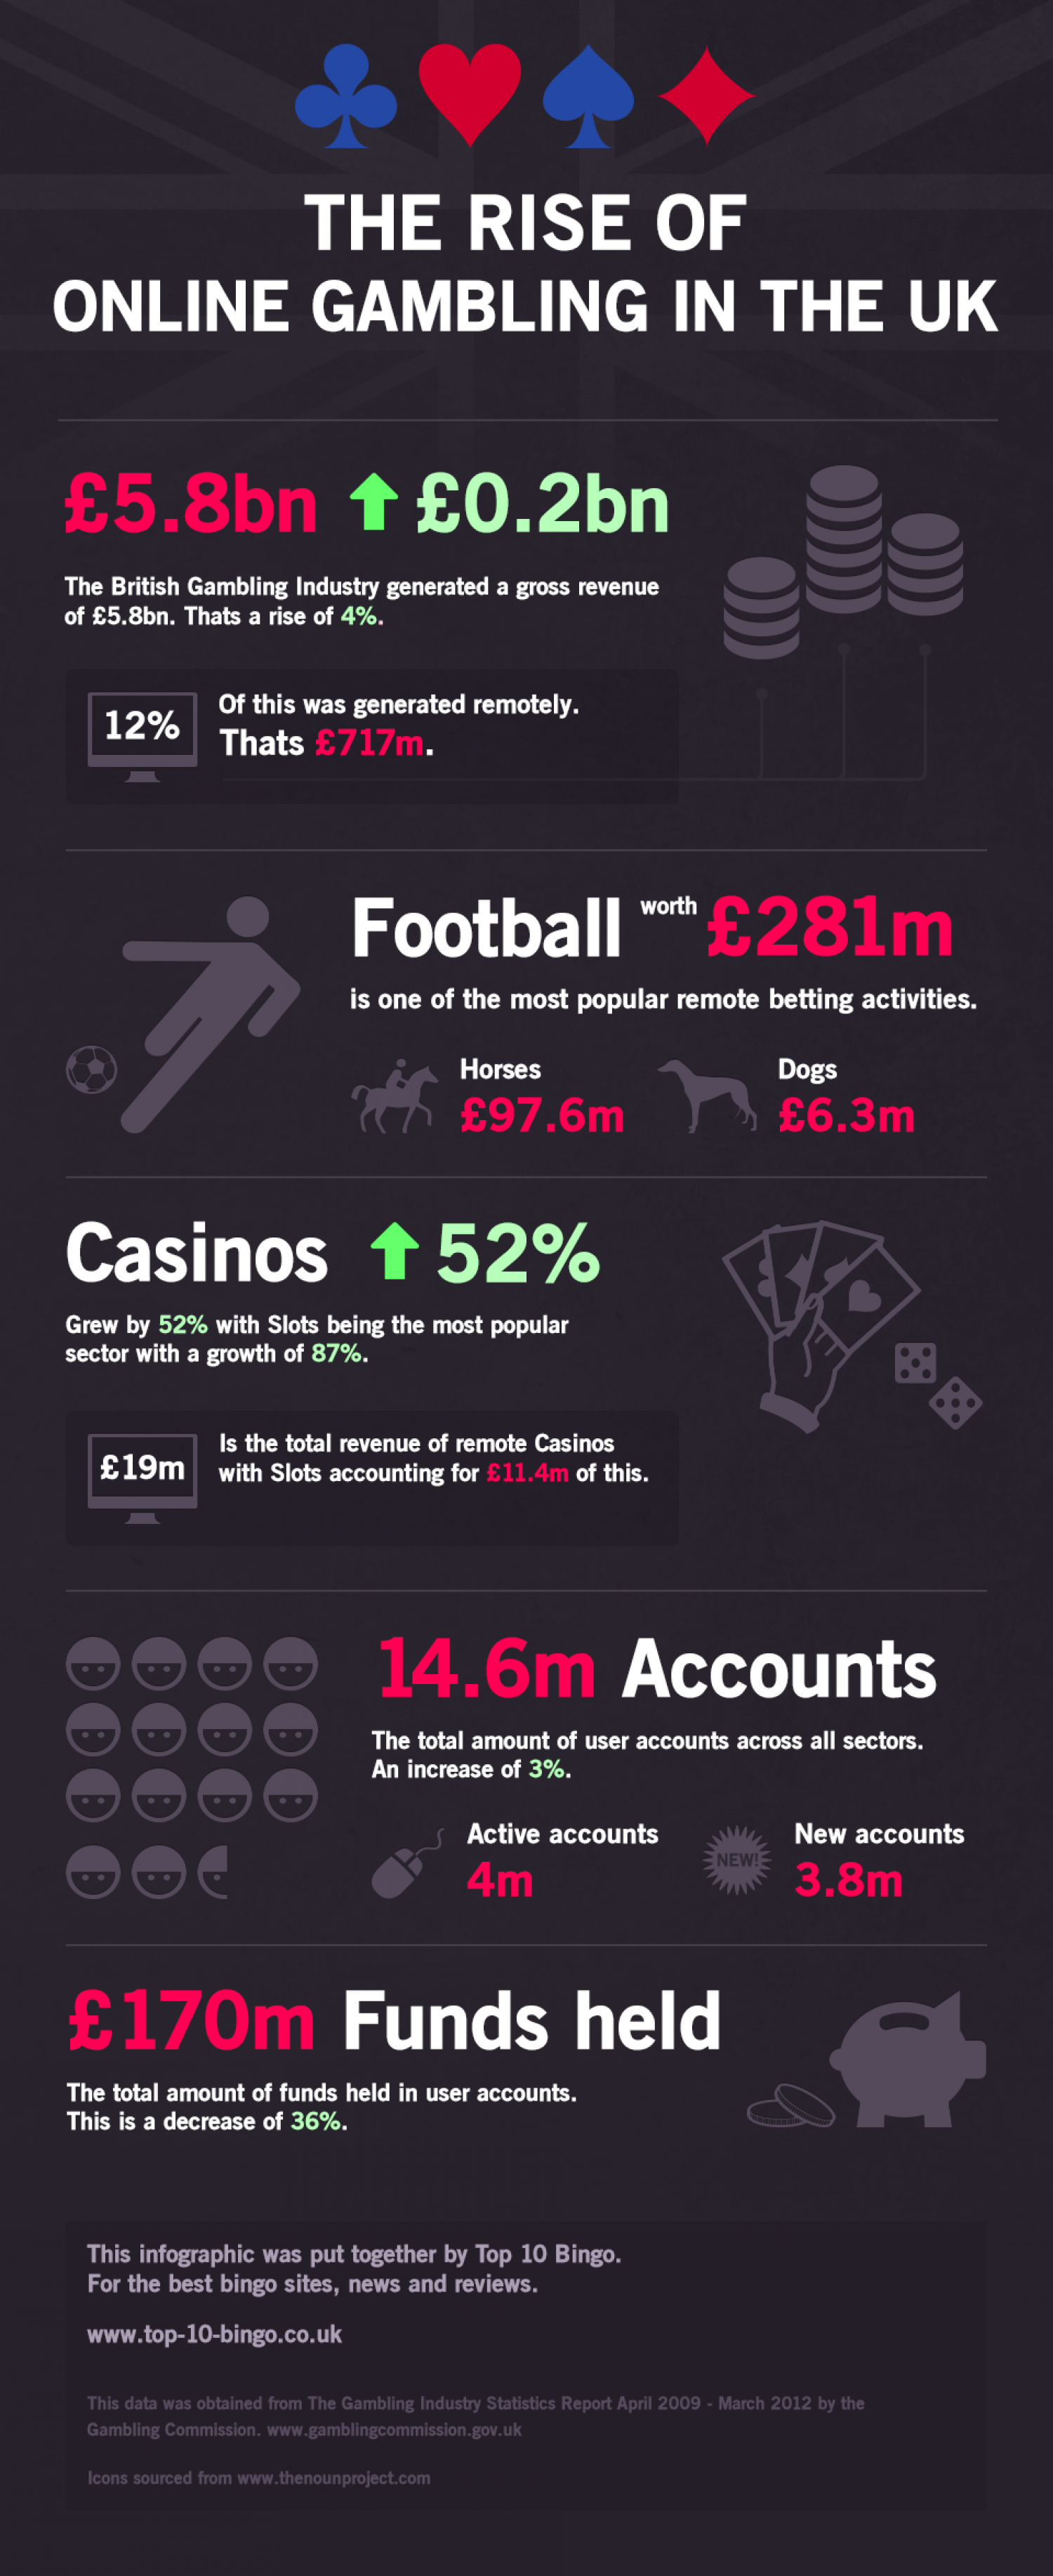 The Rise of Online Gambling in the UK Infographic